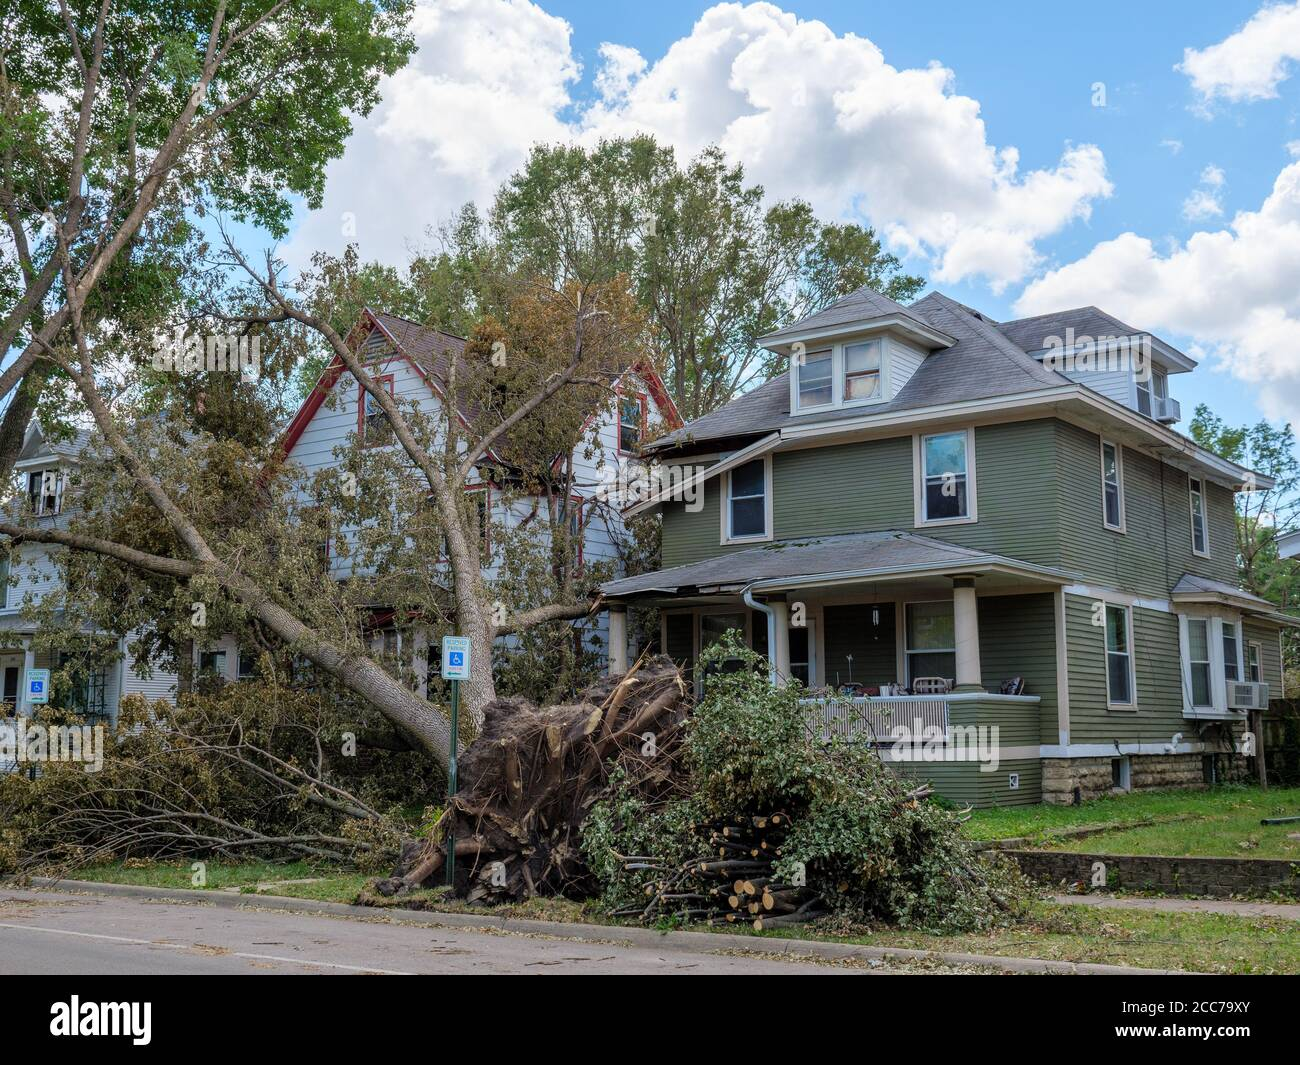 damage-from-derecho-of-august-10-2020-we